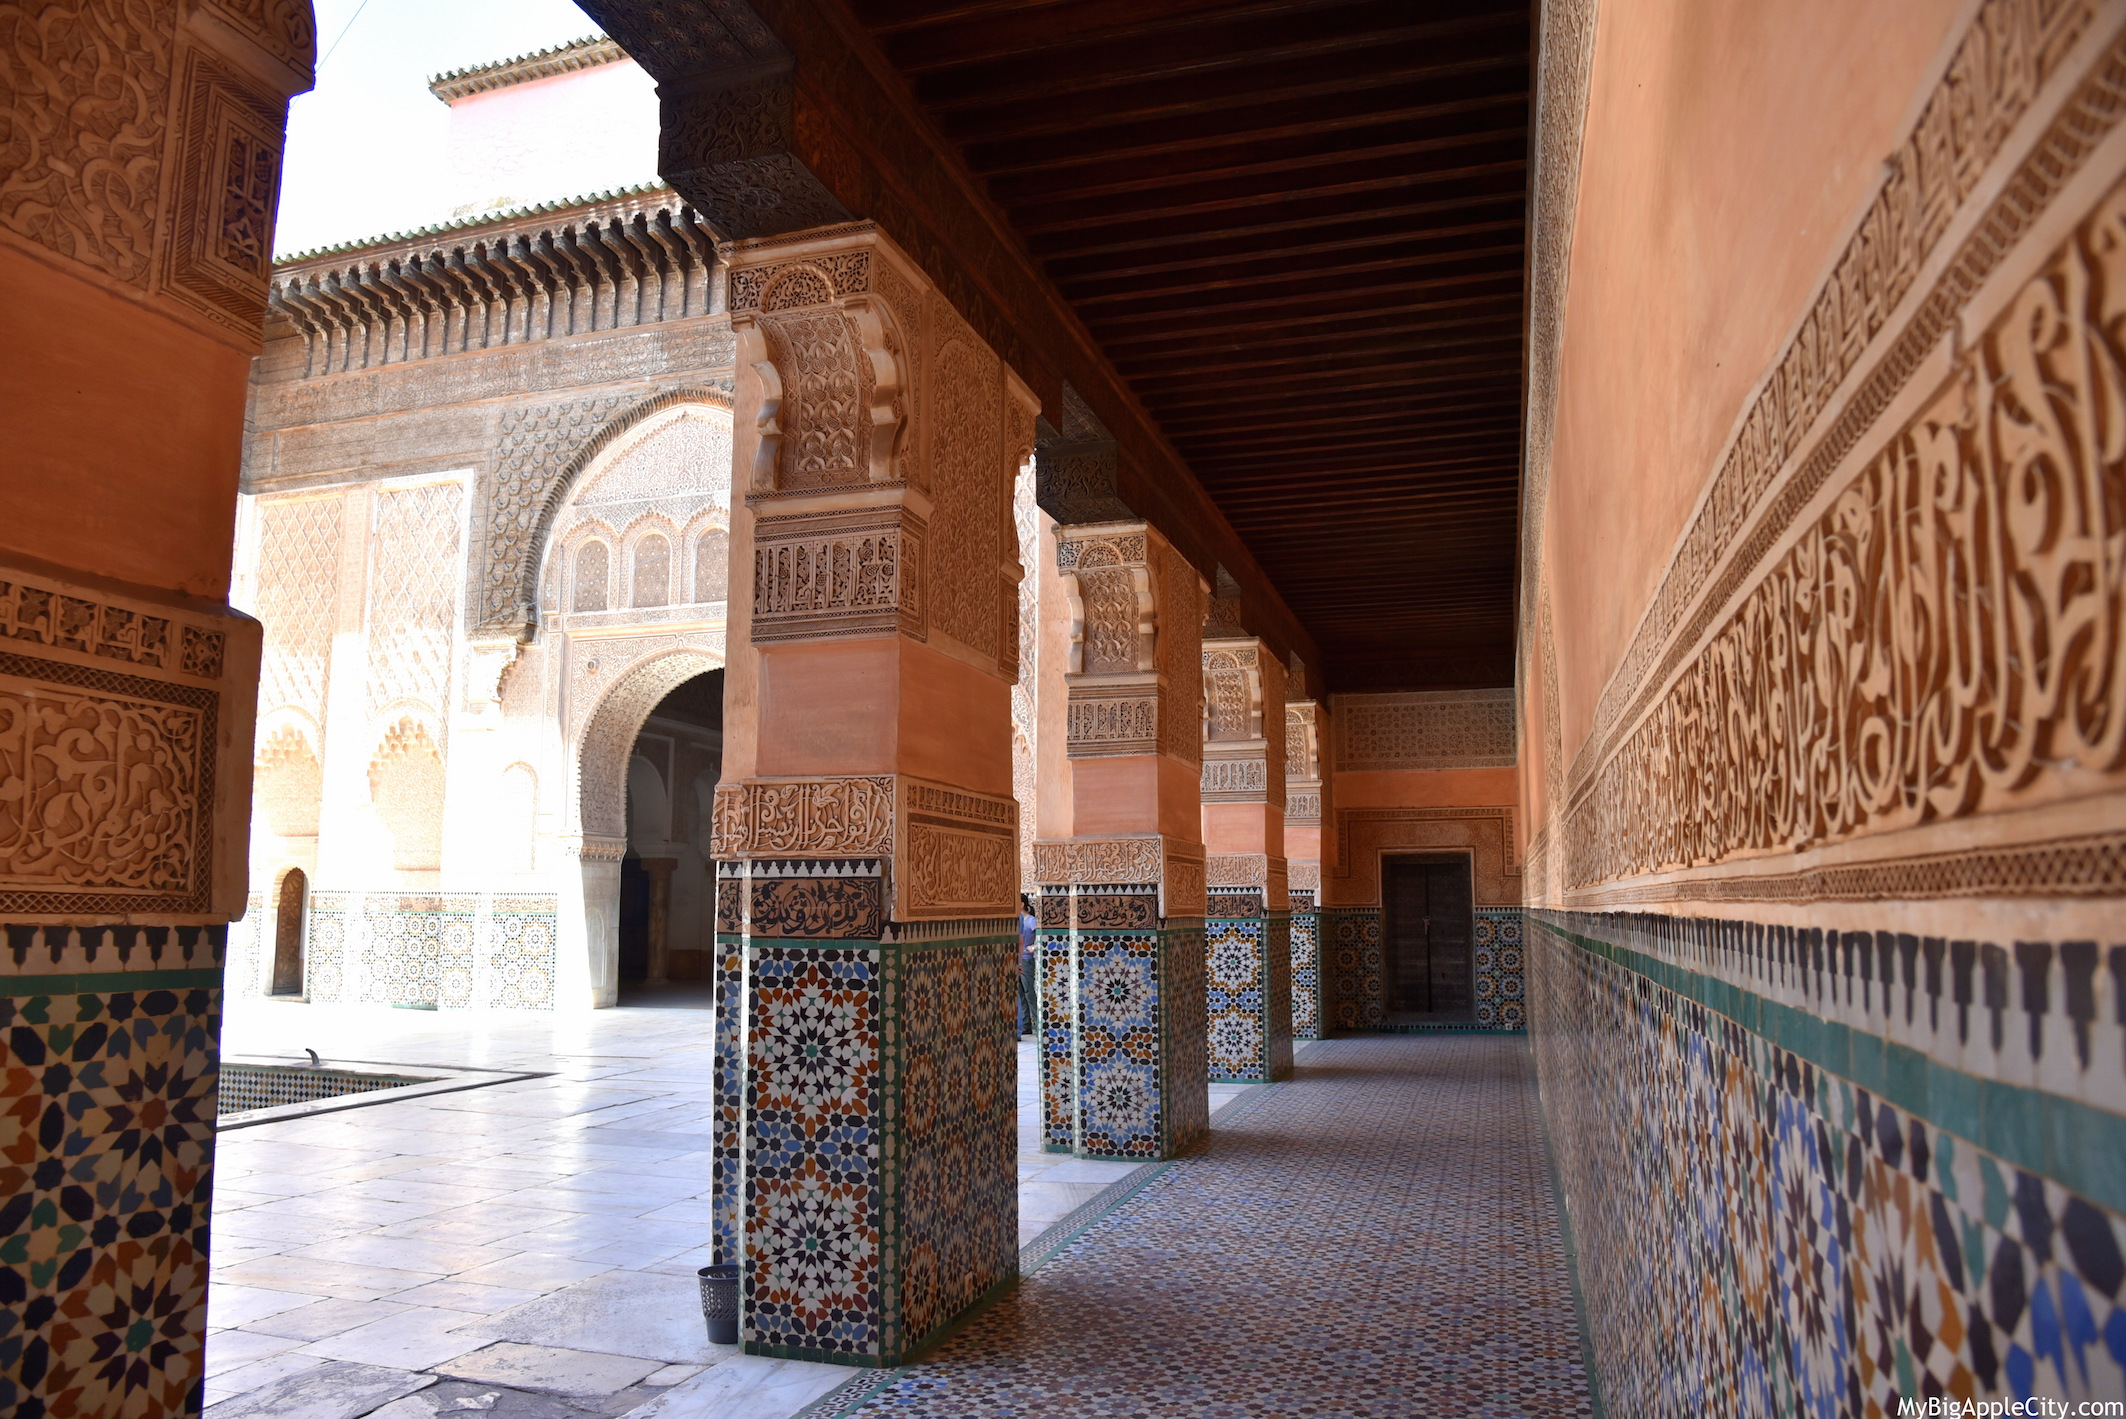 Visiter-musee-Marrakech-Travel-Blogger-2016-MyBigAppleCity